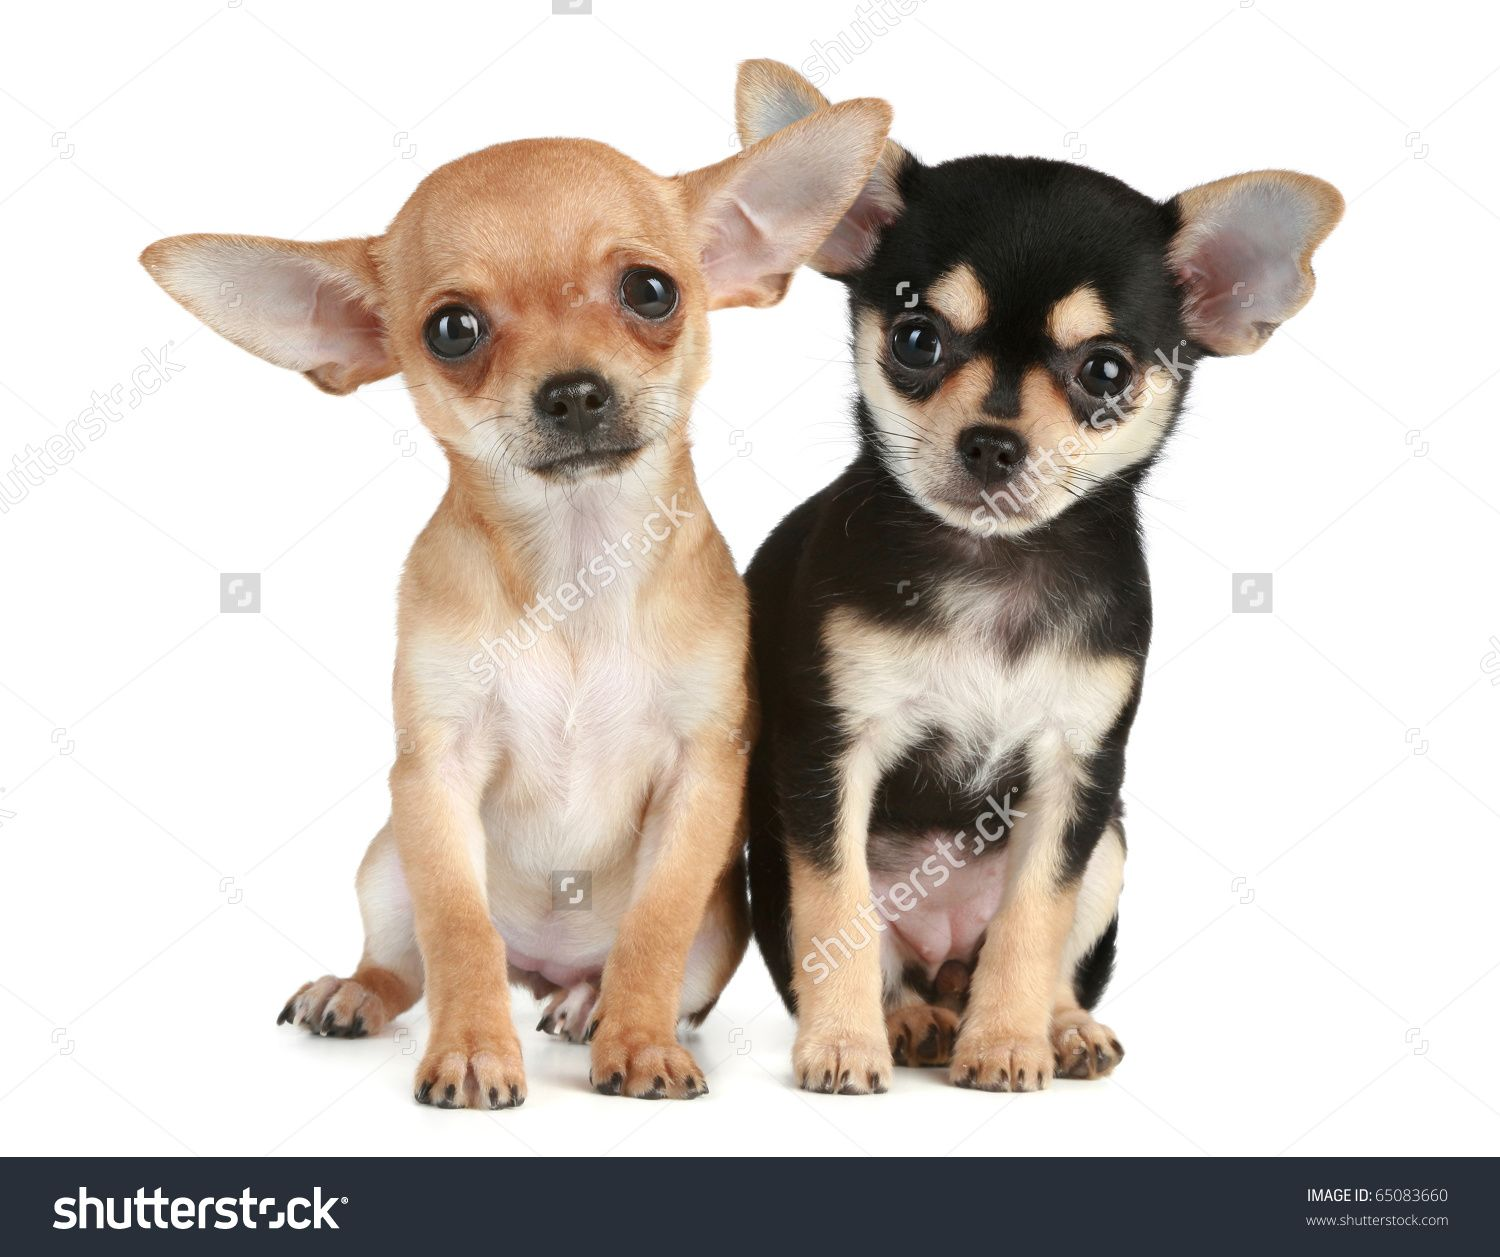 Two Funny Puppies Chihuahua 2 Months Stock Photo 65083660